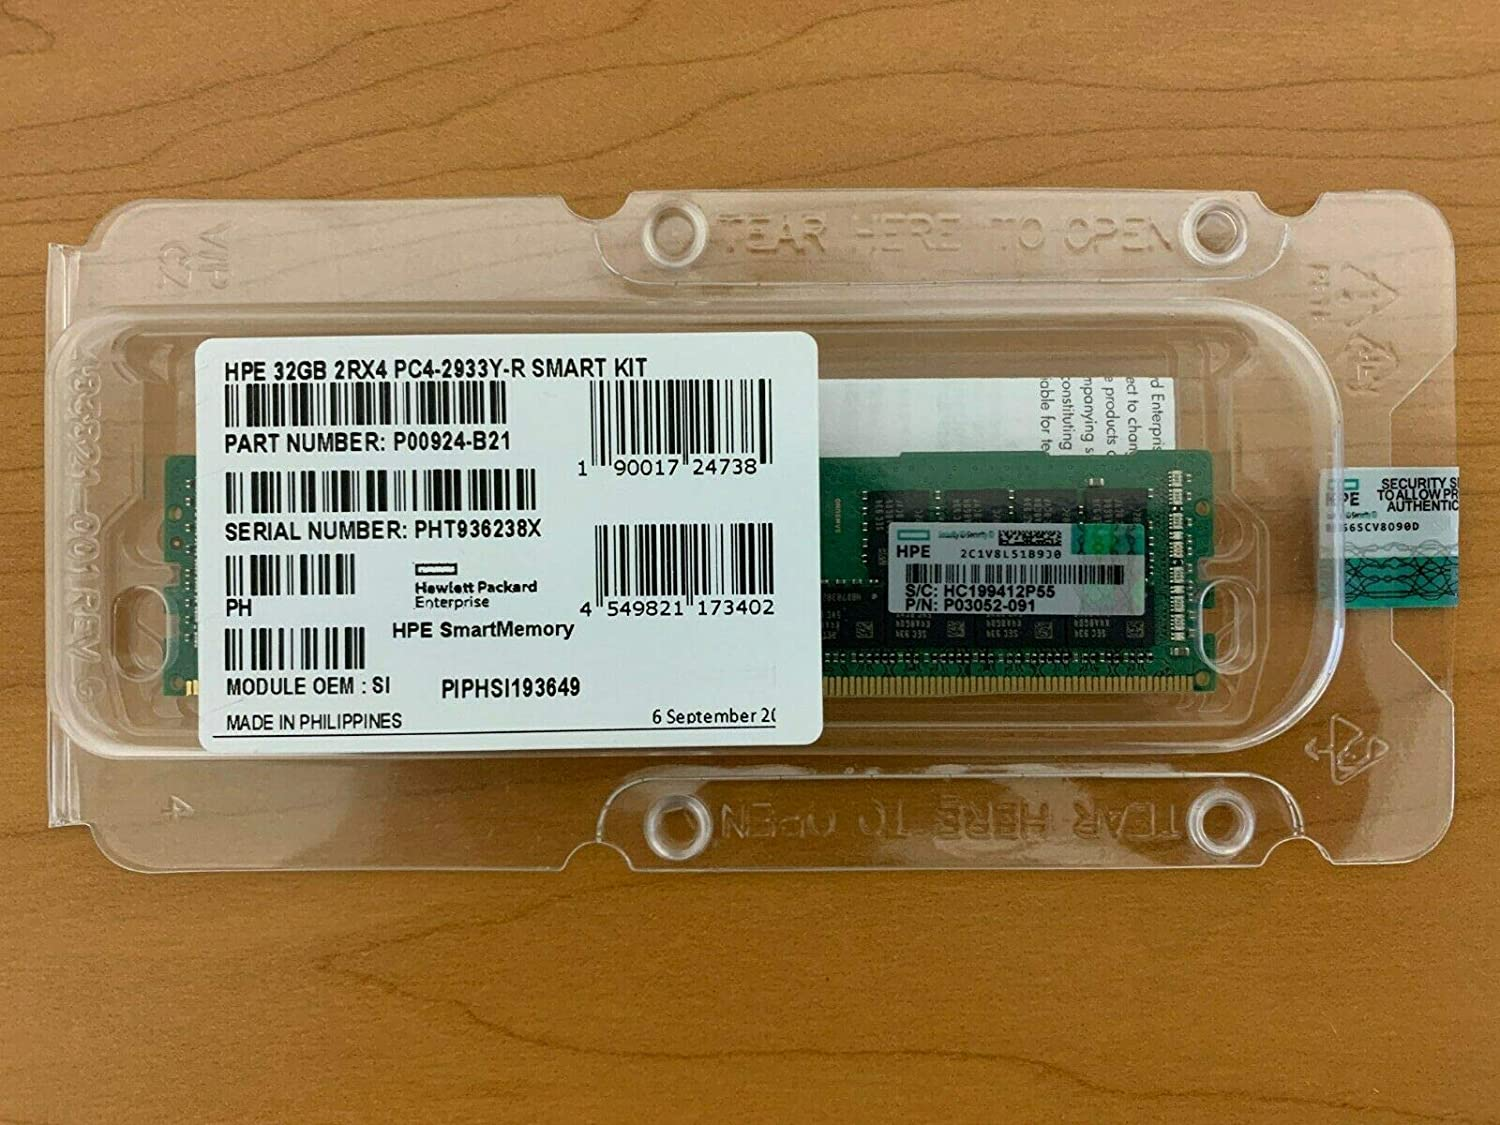 New HPE P00924-B21 P03052-091 32GB PC4-2933Y-R Memory Sales of SALE items Max 56% OFF from new works Facto 2RX4